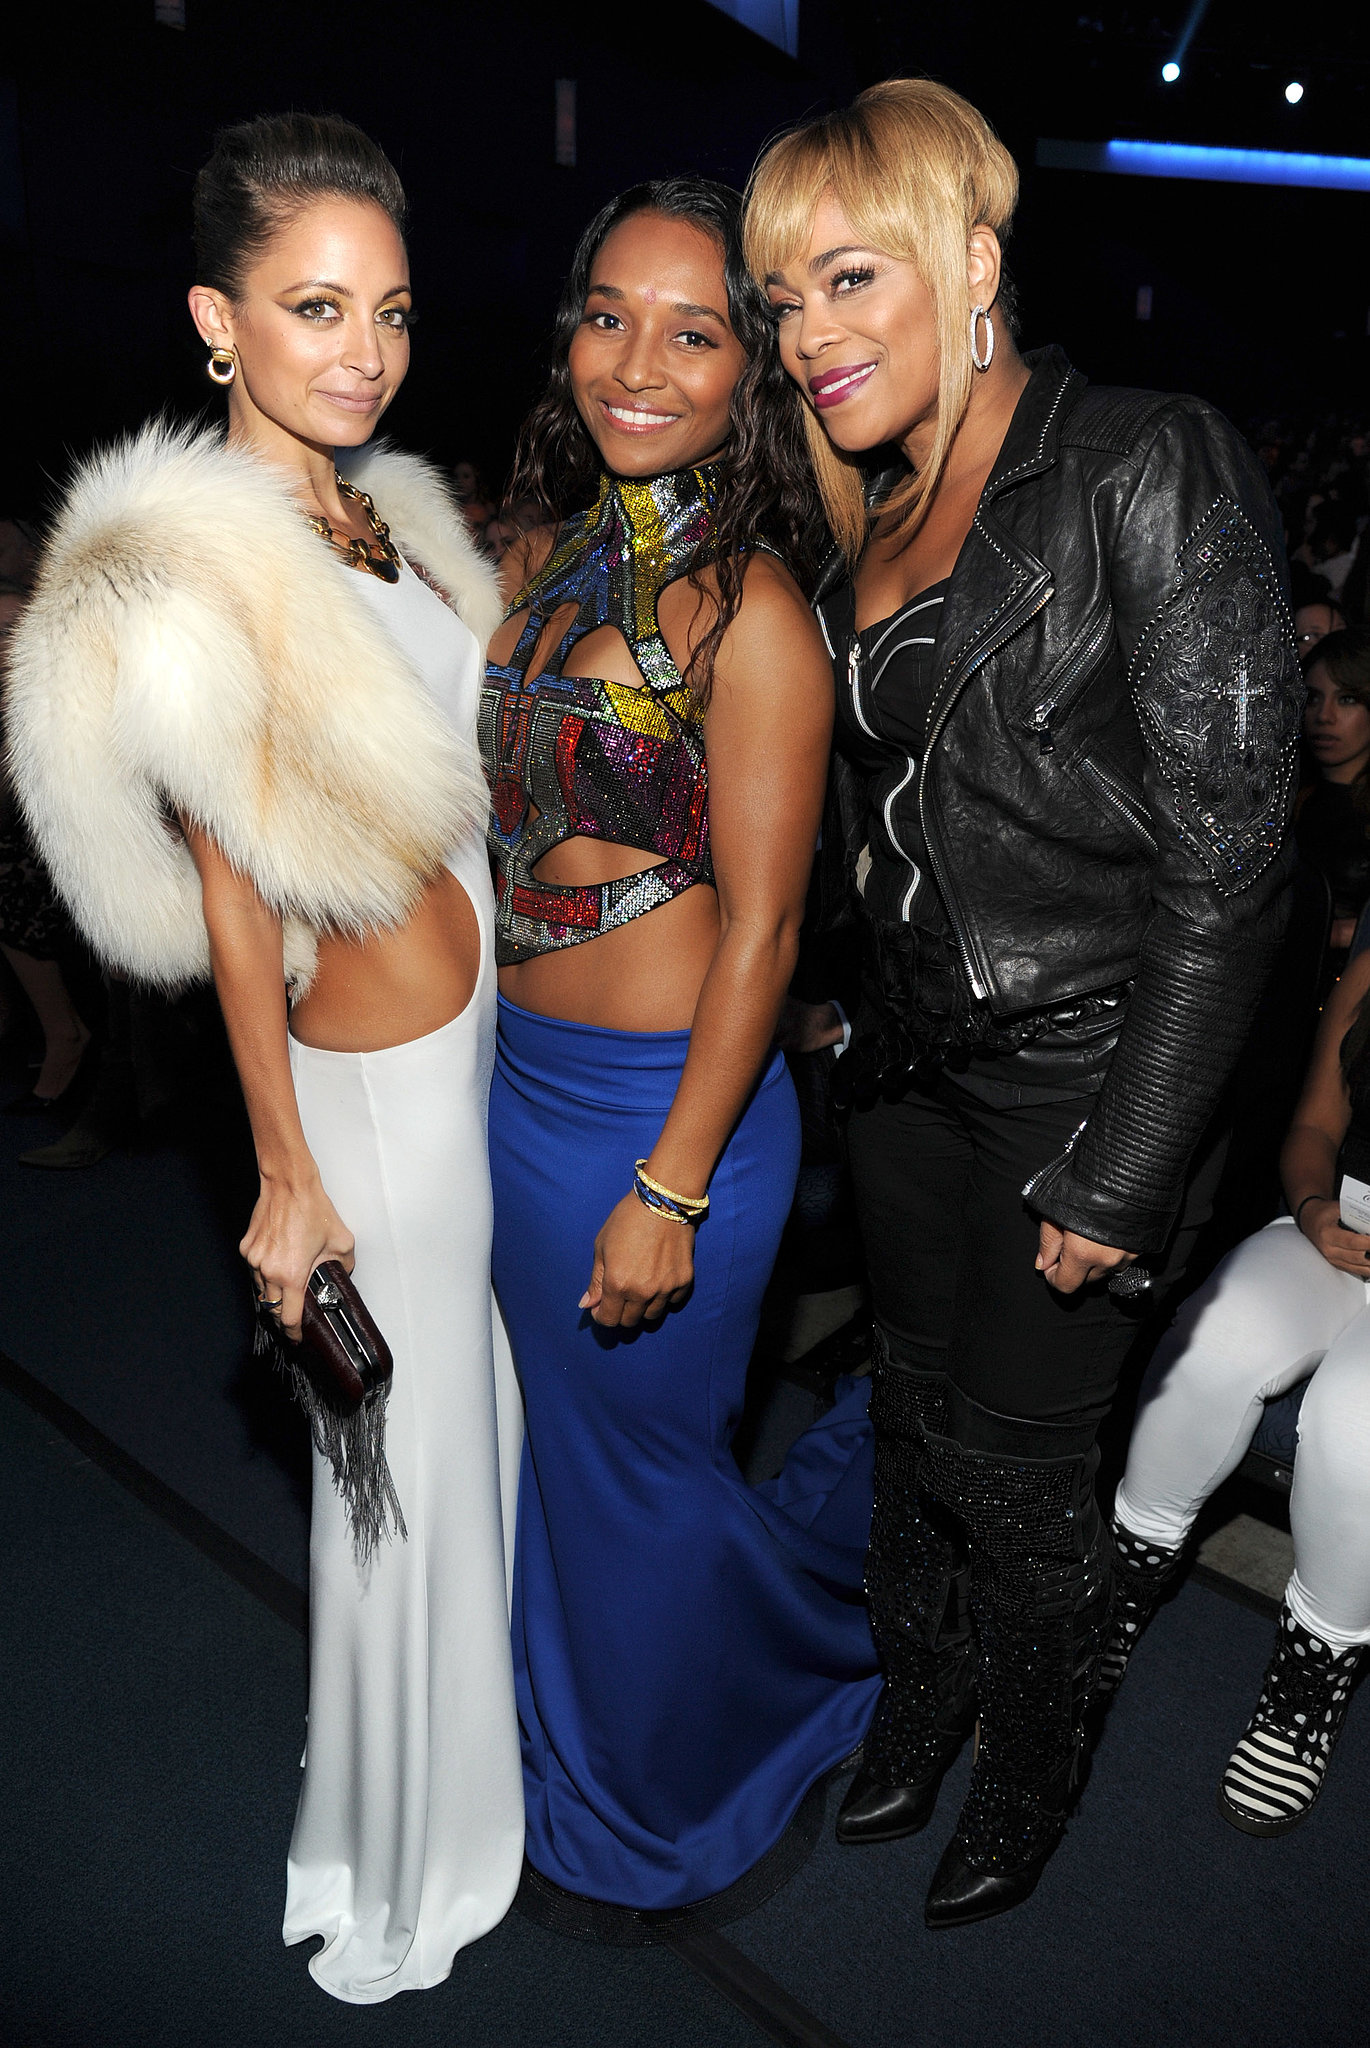 Nicole Richie caught up with TLC's Chilli and T-Boz at the 2013 American Music Awards.